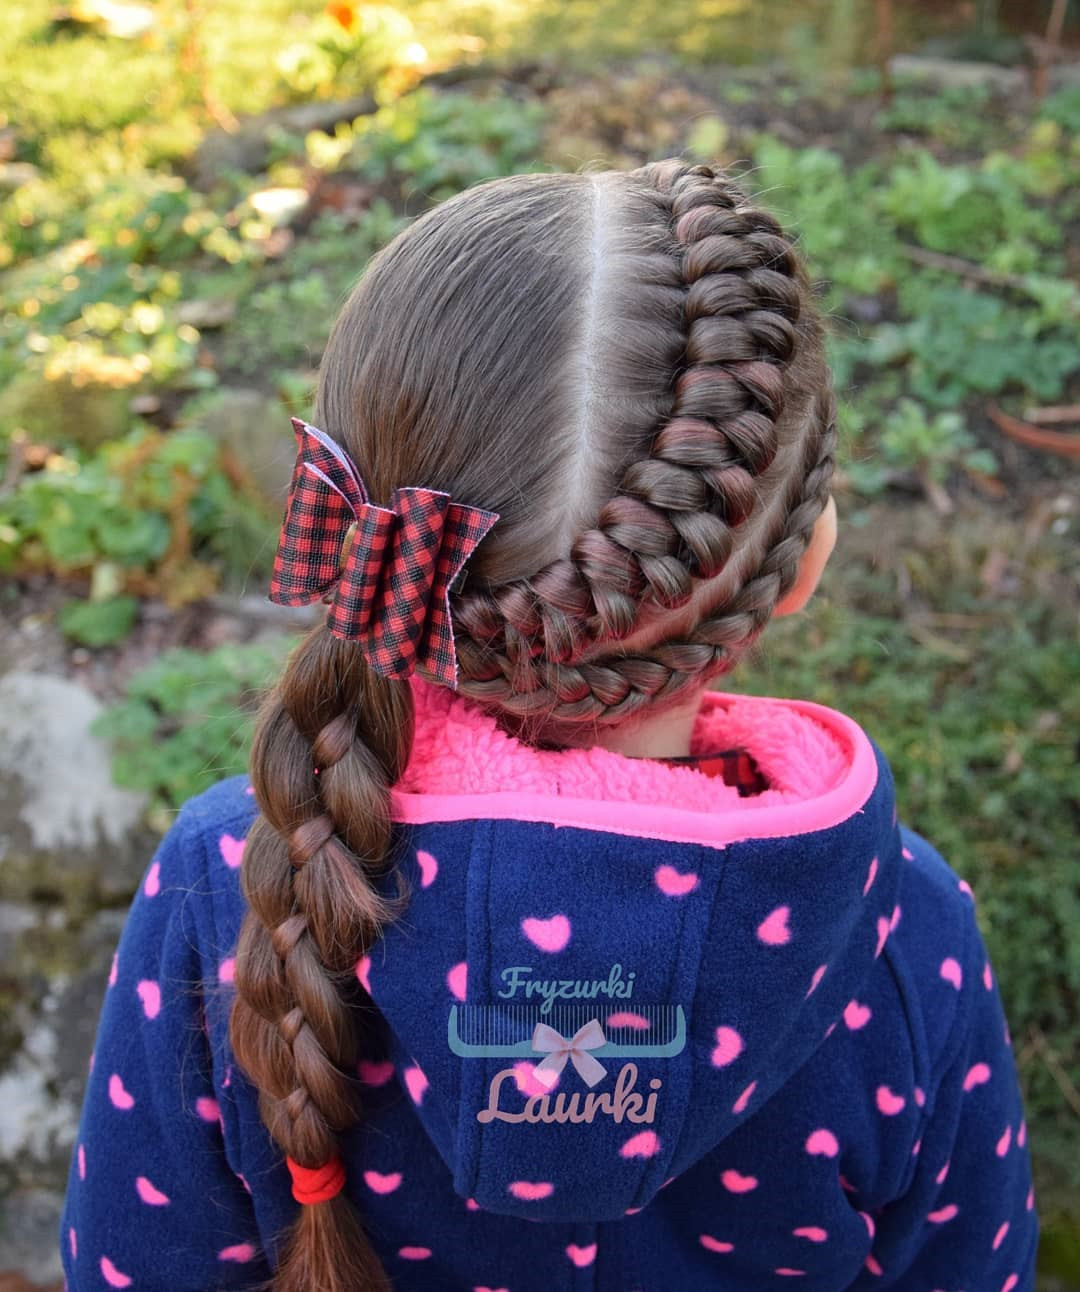 50 Adorable Braided Hairstyles for Kids 2020,little girl braided hairstyles